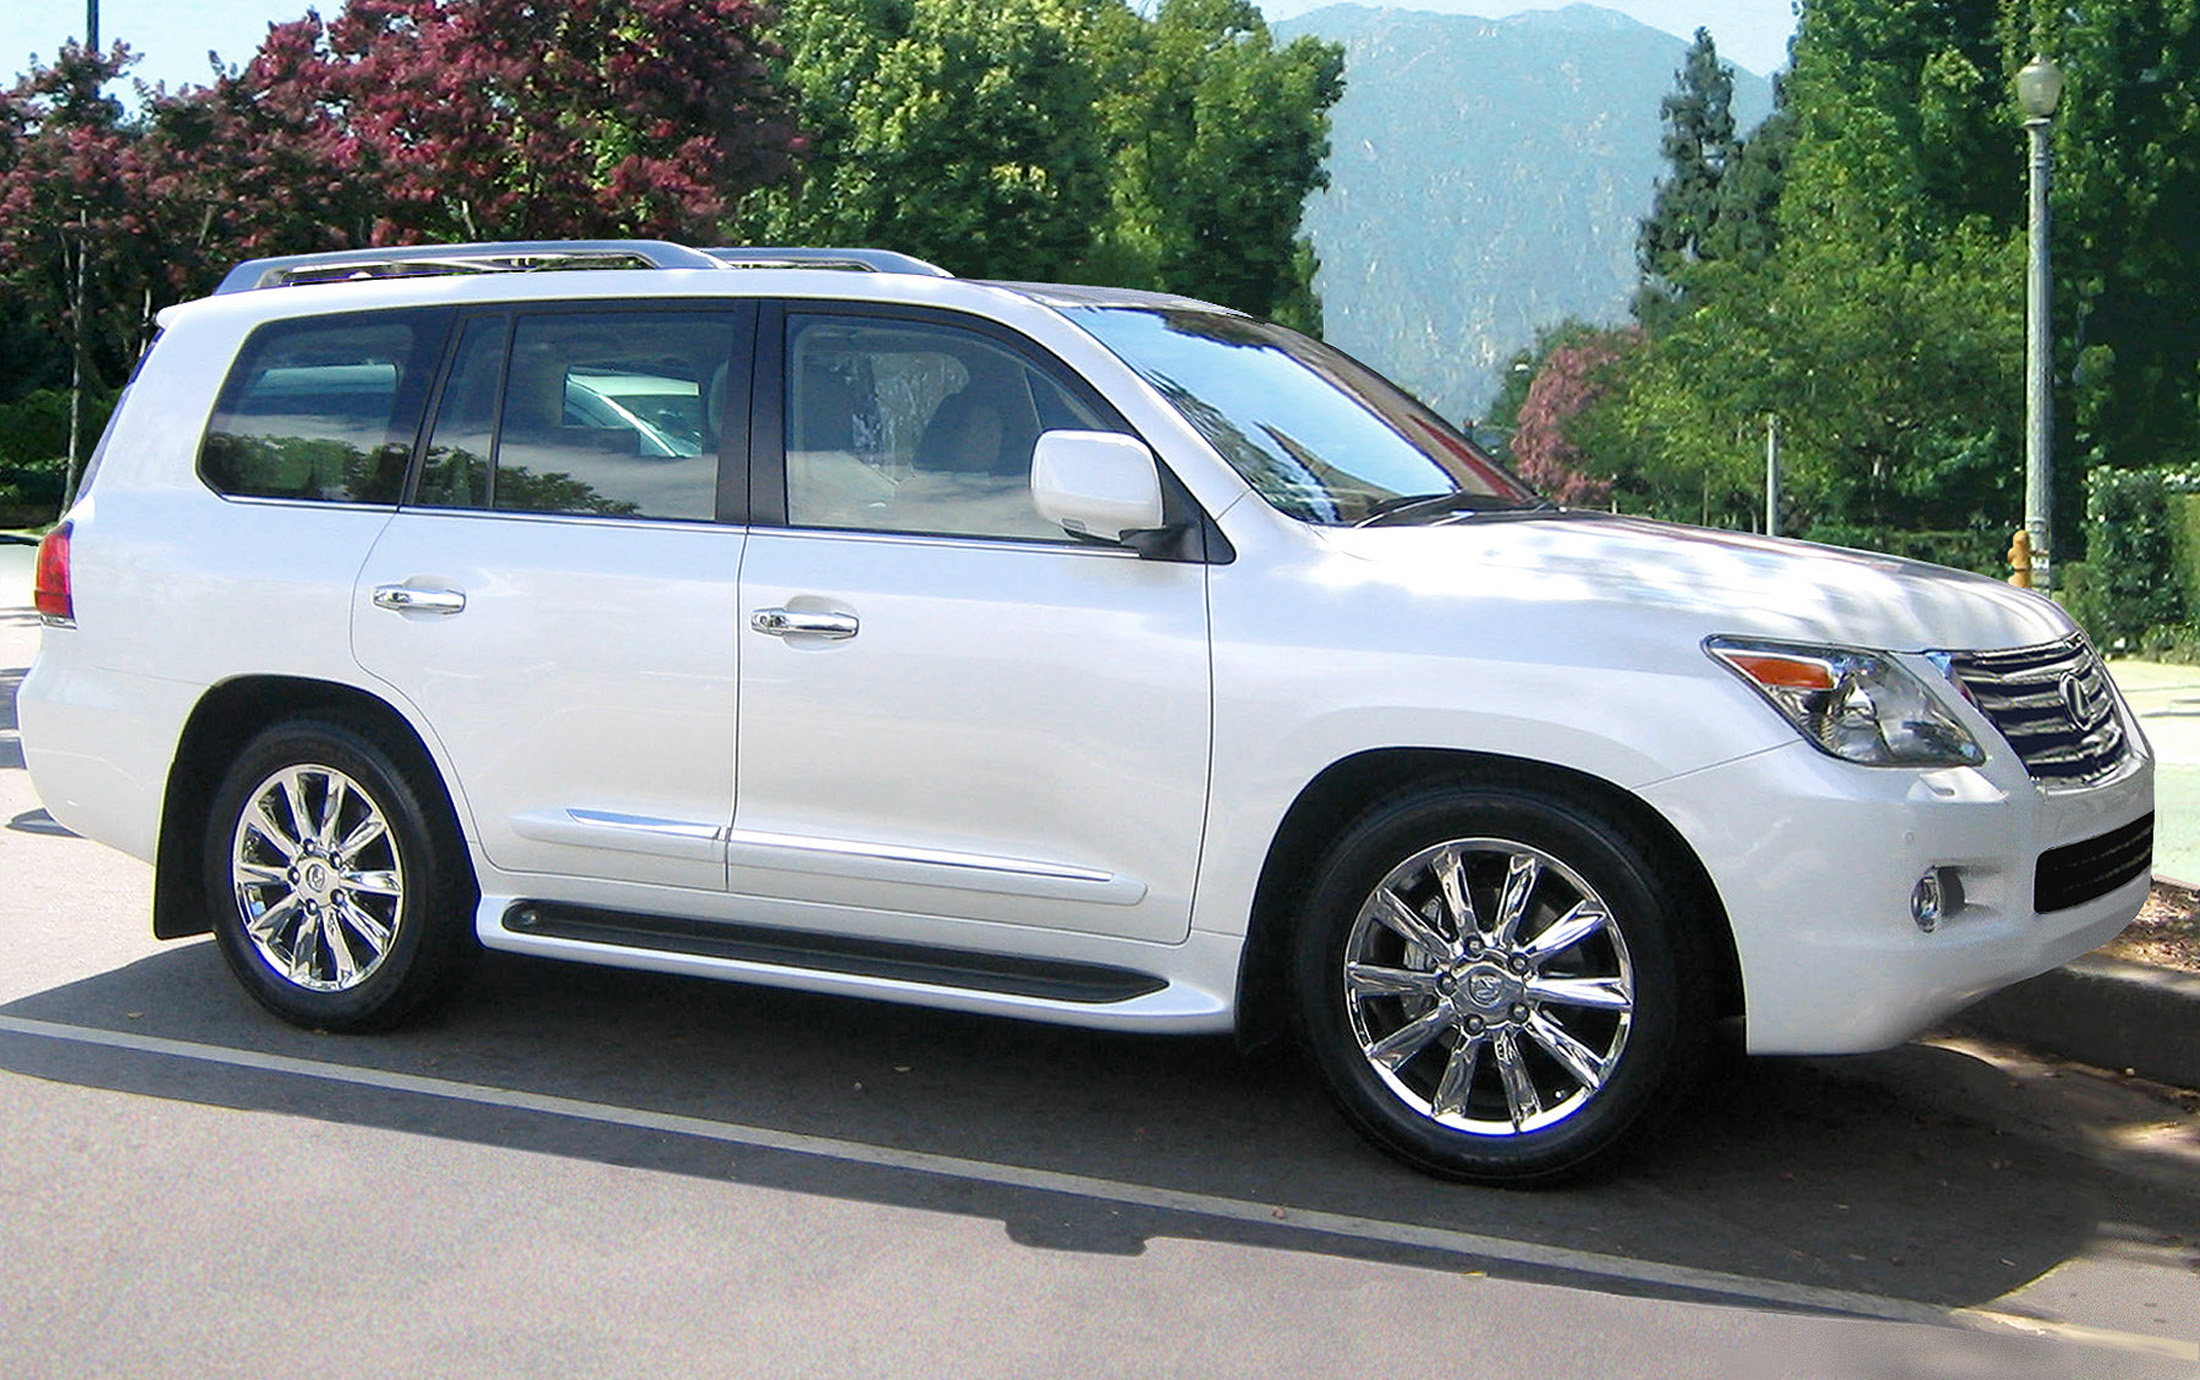 2009 lexus lx 570 information and photos momentcar. Black Bedroom Furniture Sets. Home Design Ideas